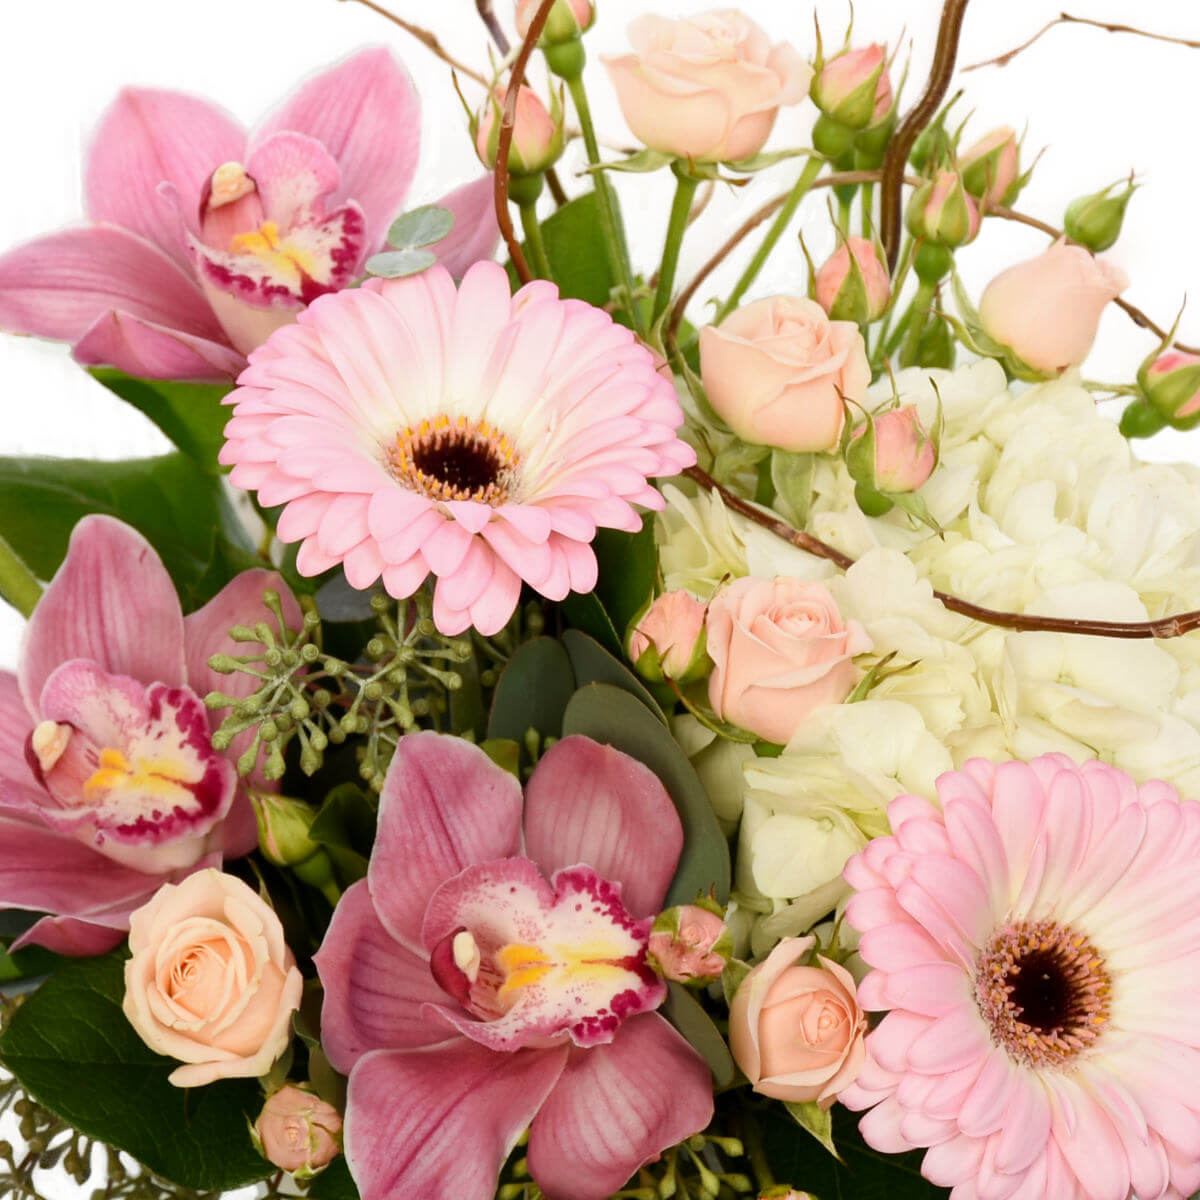 Vancouver Sympathy Flowers for a friend | Burnaby Florist Adele Rae